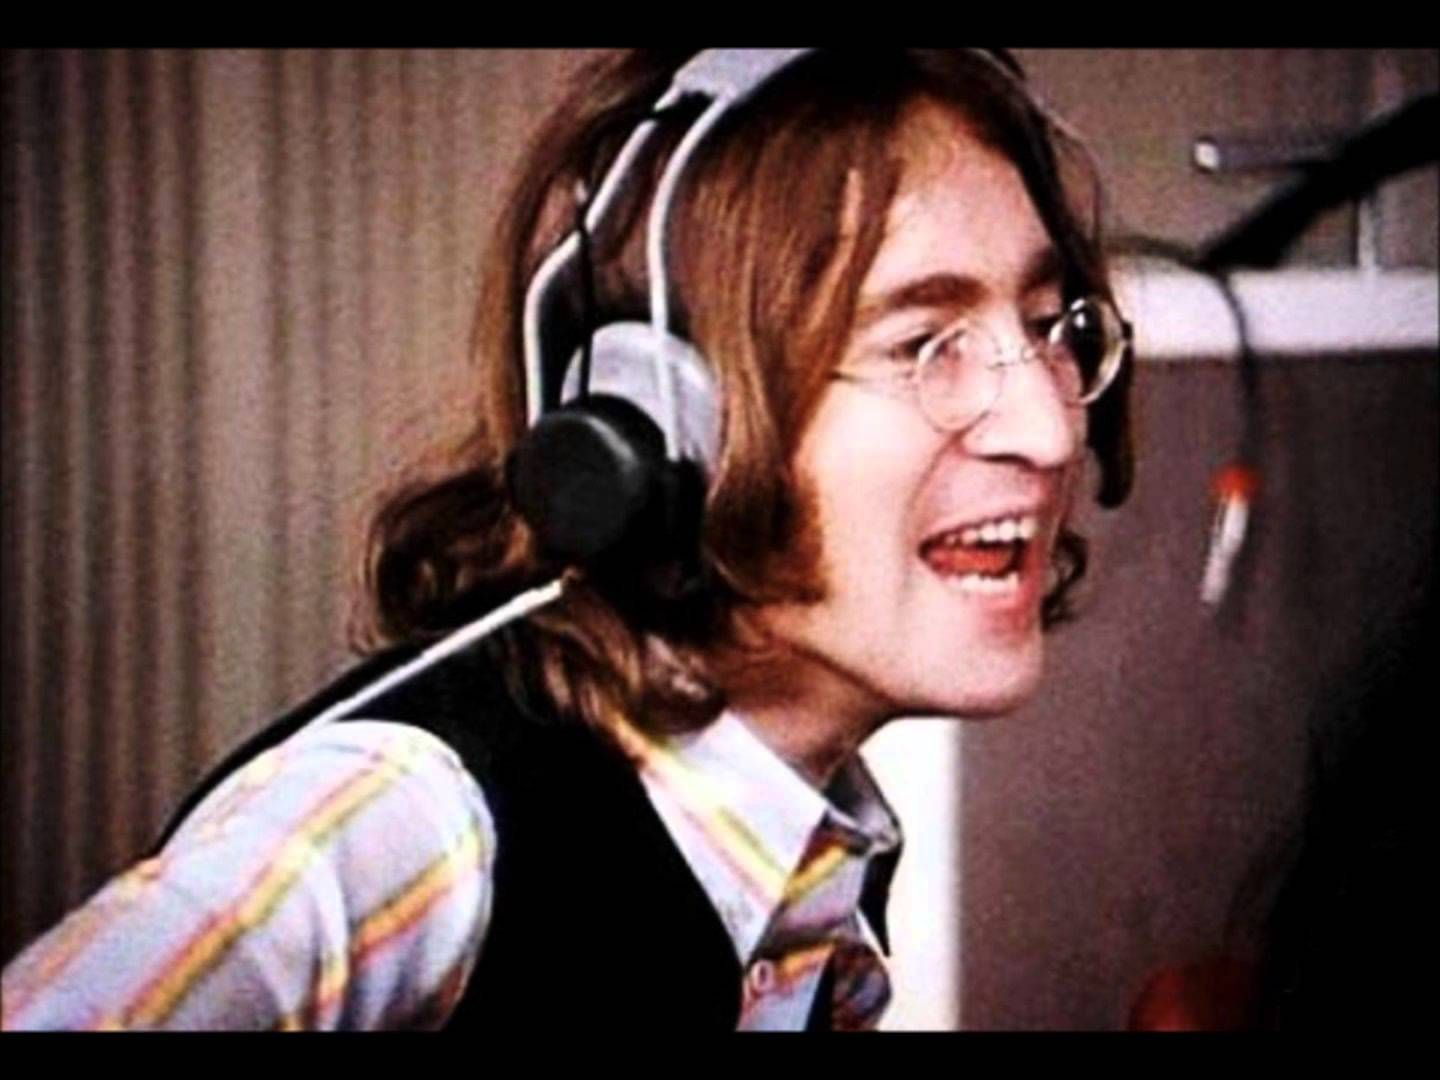 John Lennon Happy Christmas John Lennon Happy Christmas John Lennon Lennon